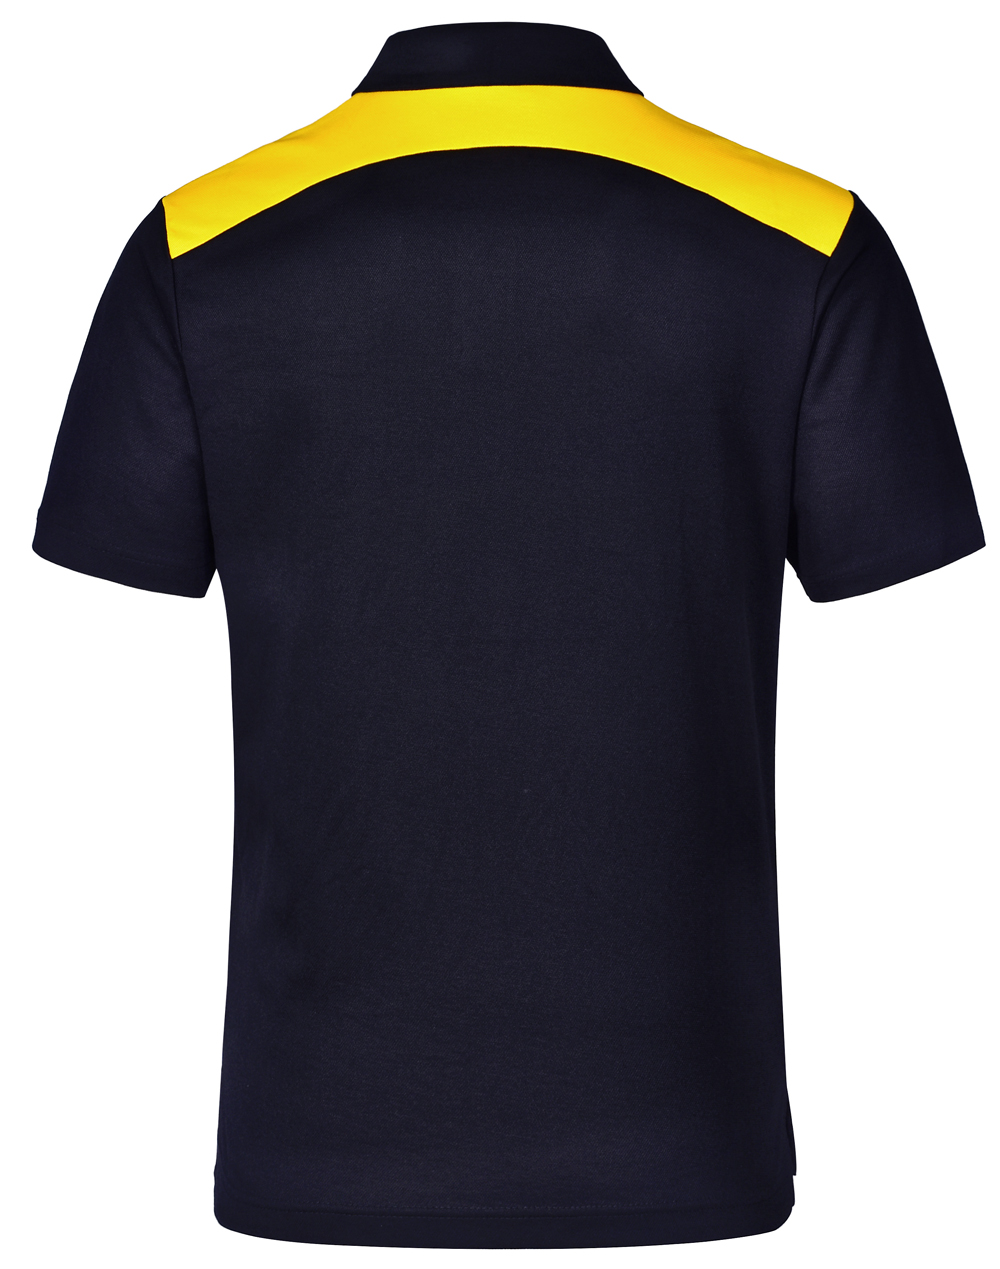 https://s3-ap-southeast-1.amazonaws.com/ws-imgs/POLOSHIRTS/PS31_NavyGold_Back.jpg